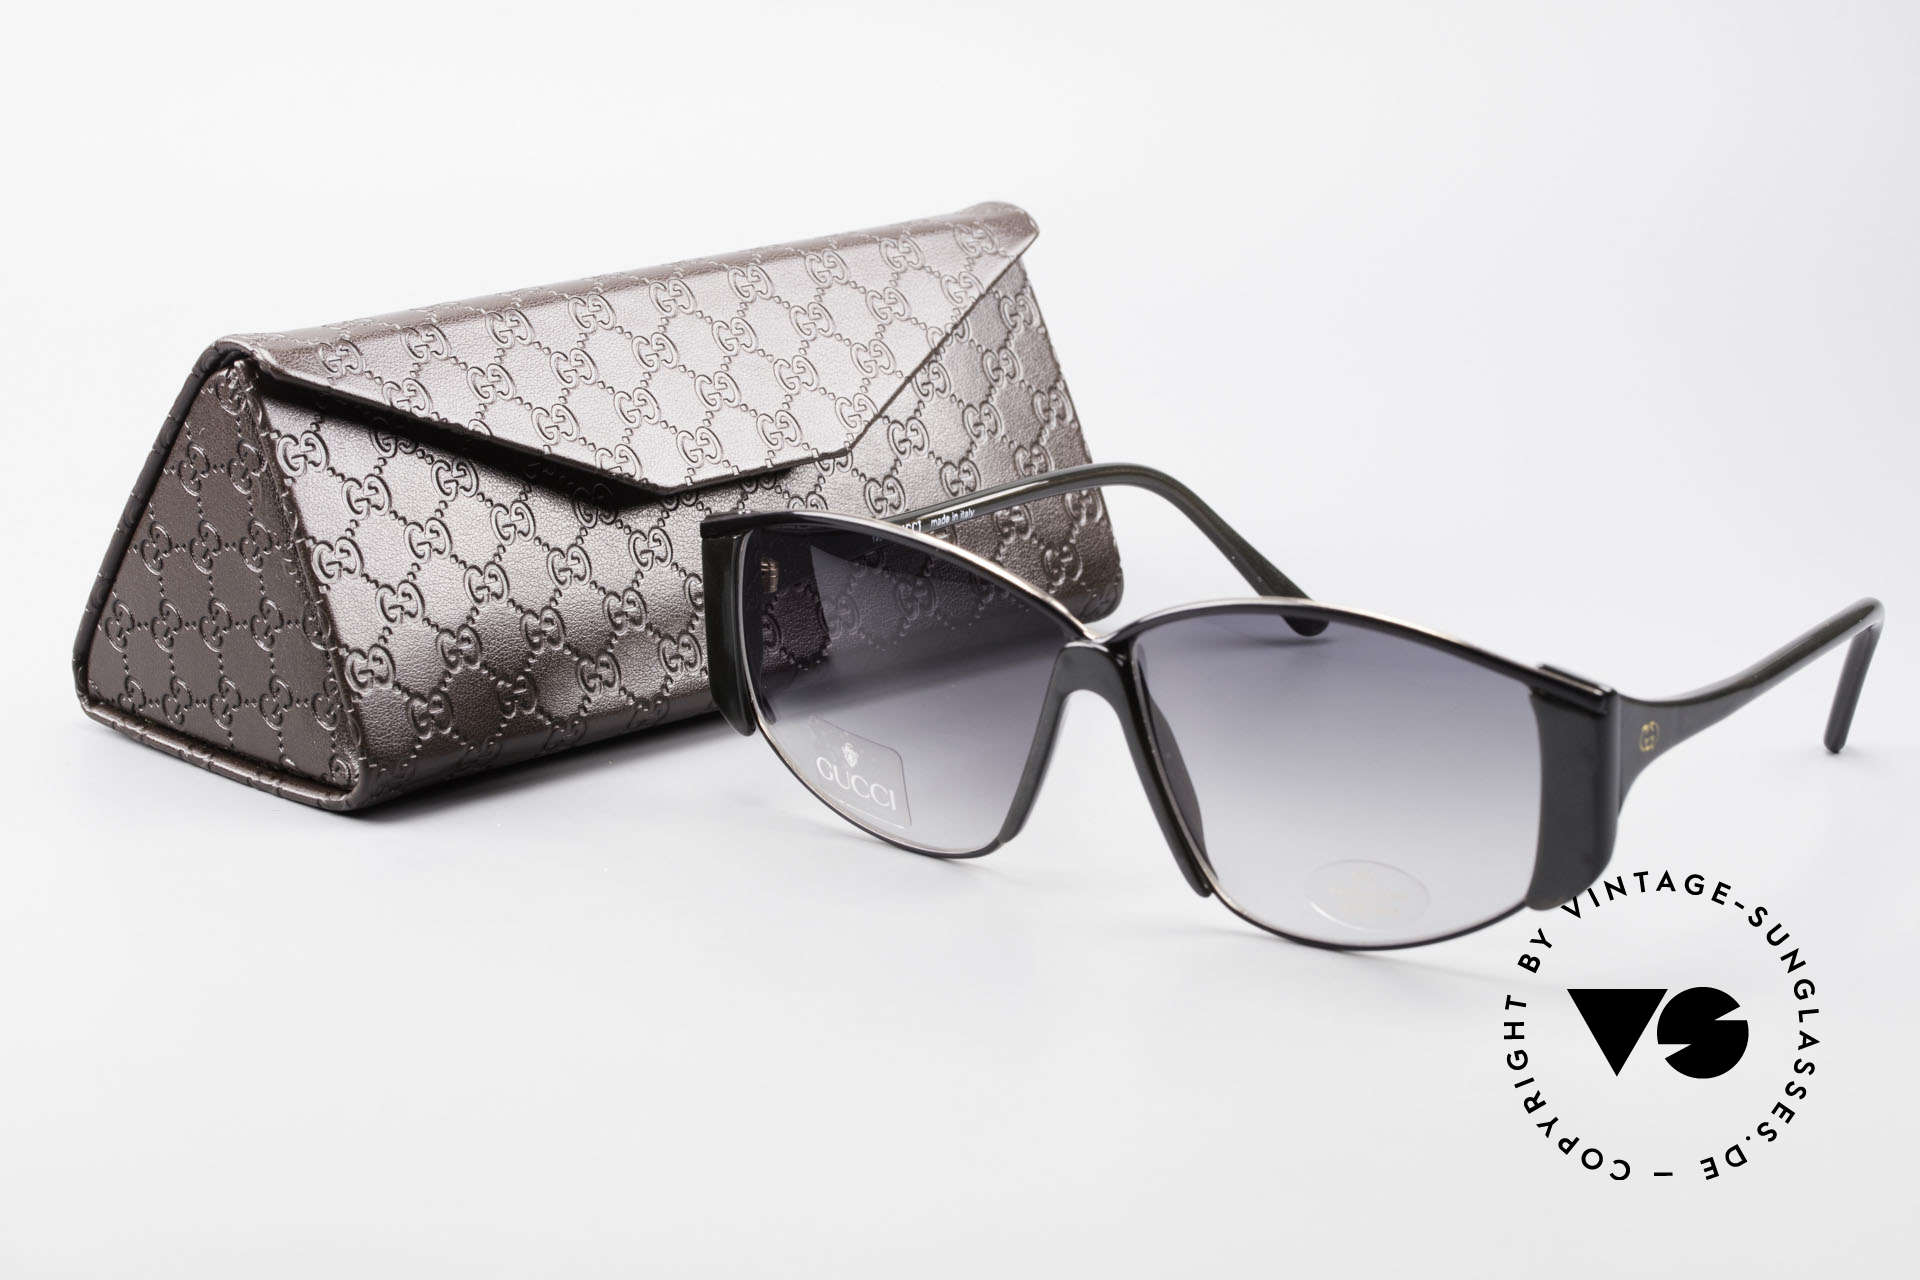 Gucci 2308 80's Ladies Designer Shades XL, Size: large, Made for Women